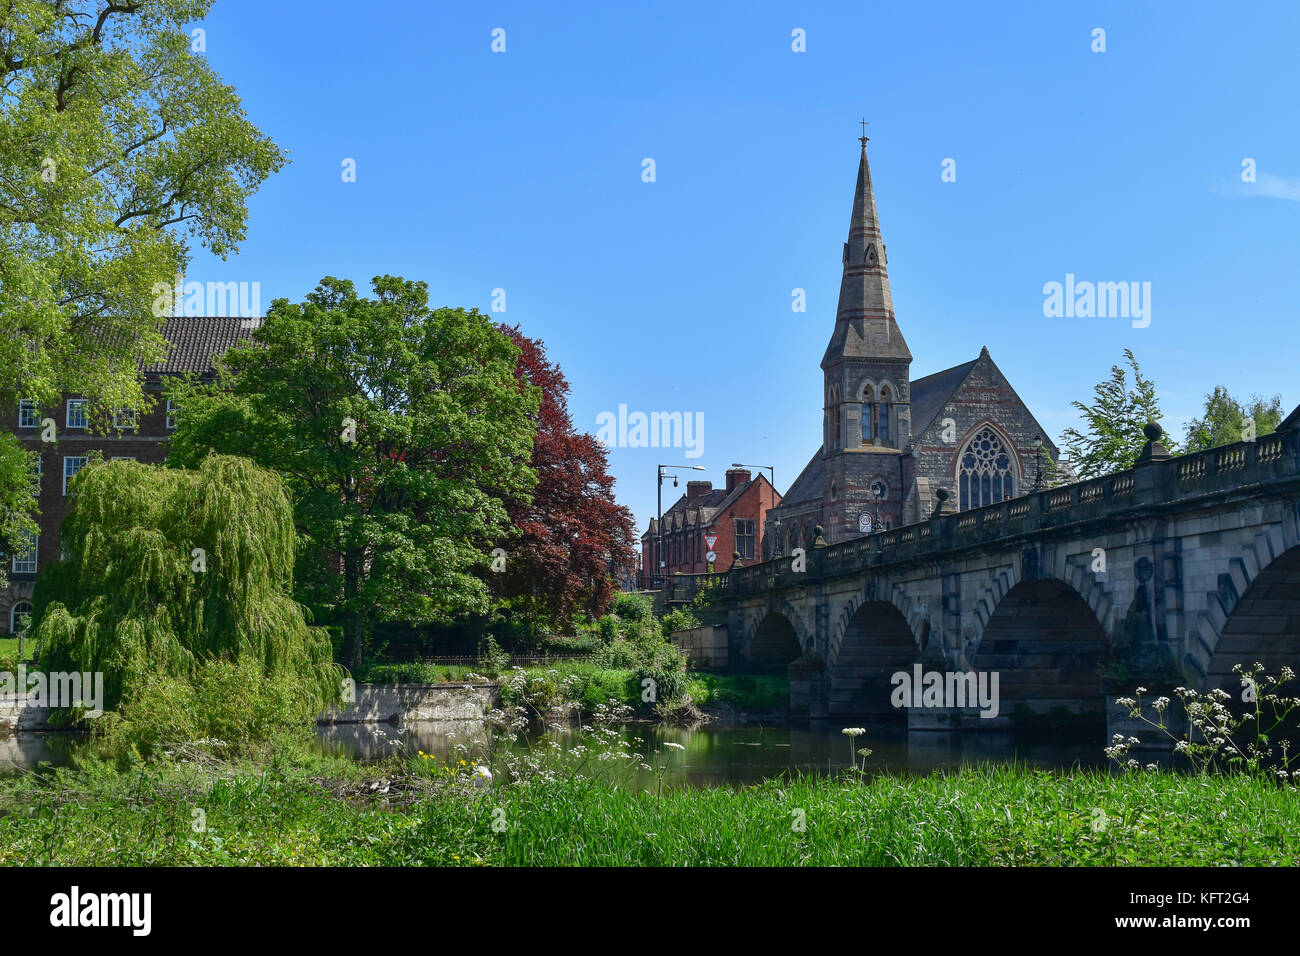 The United Reform Church and English Bridge over the River Severn in Shrewsbury. - Stock Image